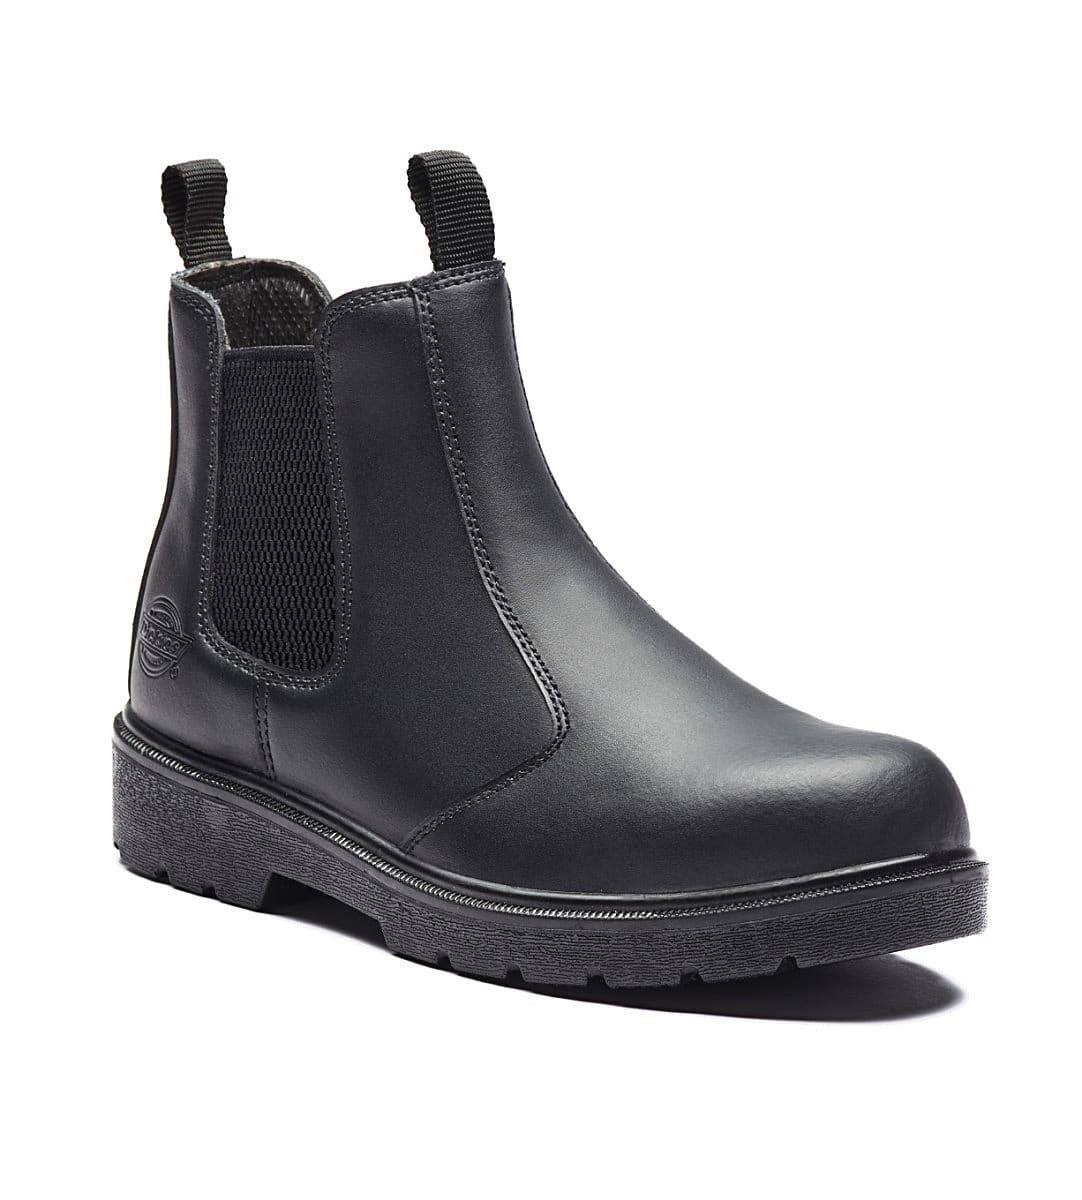 Dickies Super Safety Dealer Boots S1-P in Black (Product Code: FA23345)